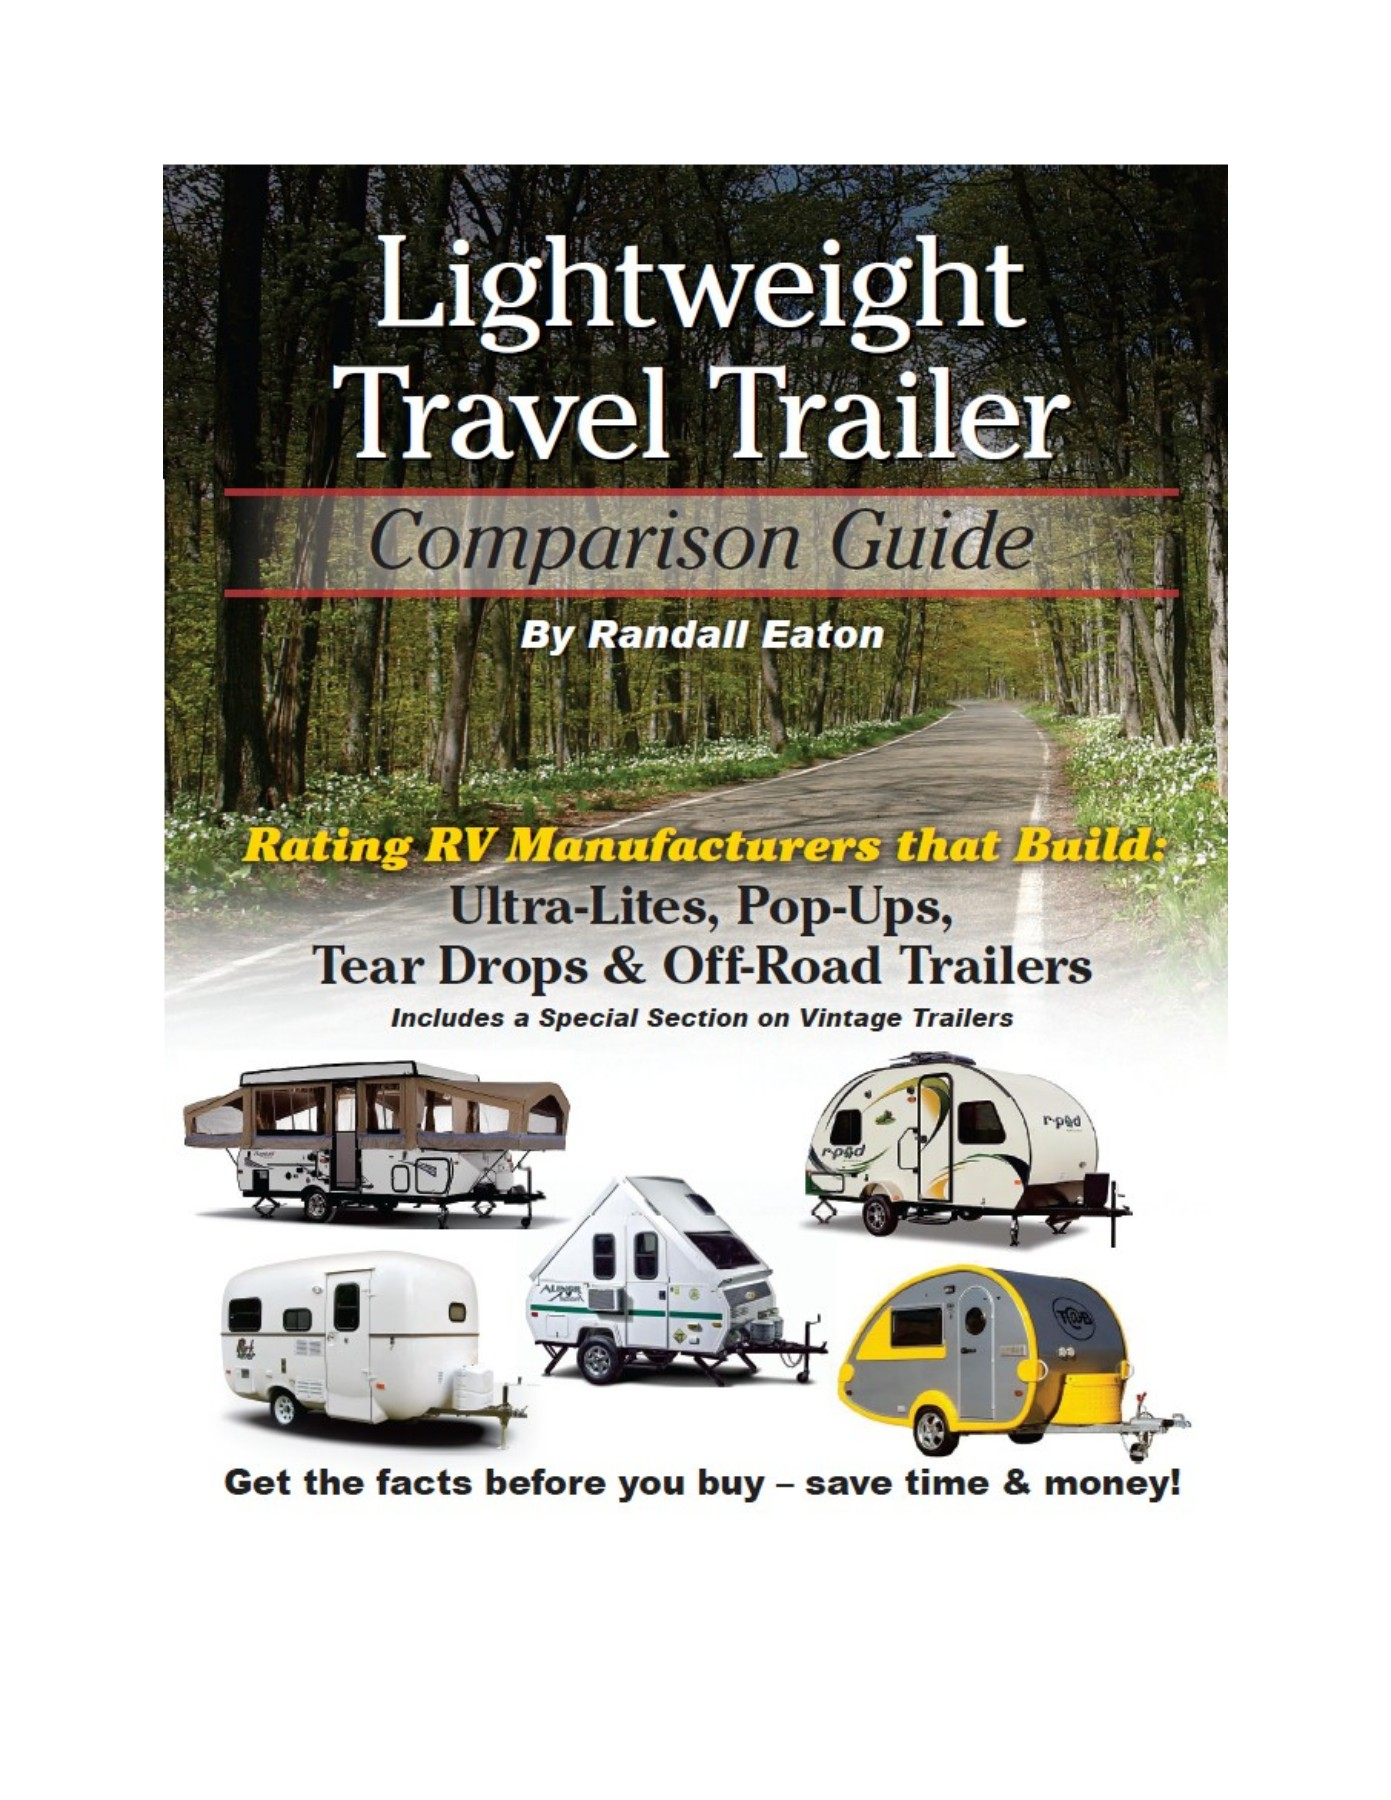 Lightweight Travel Trailer Comparison Guide Pages 1 50 Text Rvnet Open Roads Forum Fifthwheels Installing Battery Kill Switch Version Anyflip